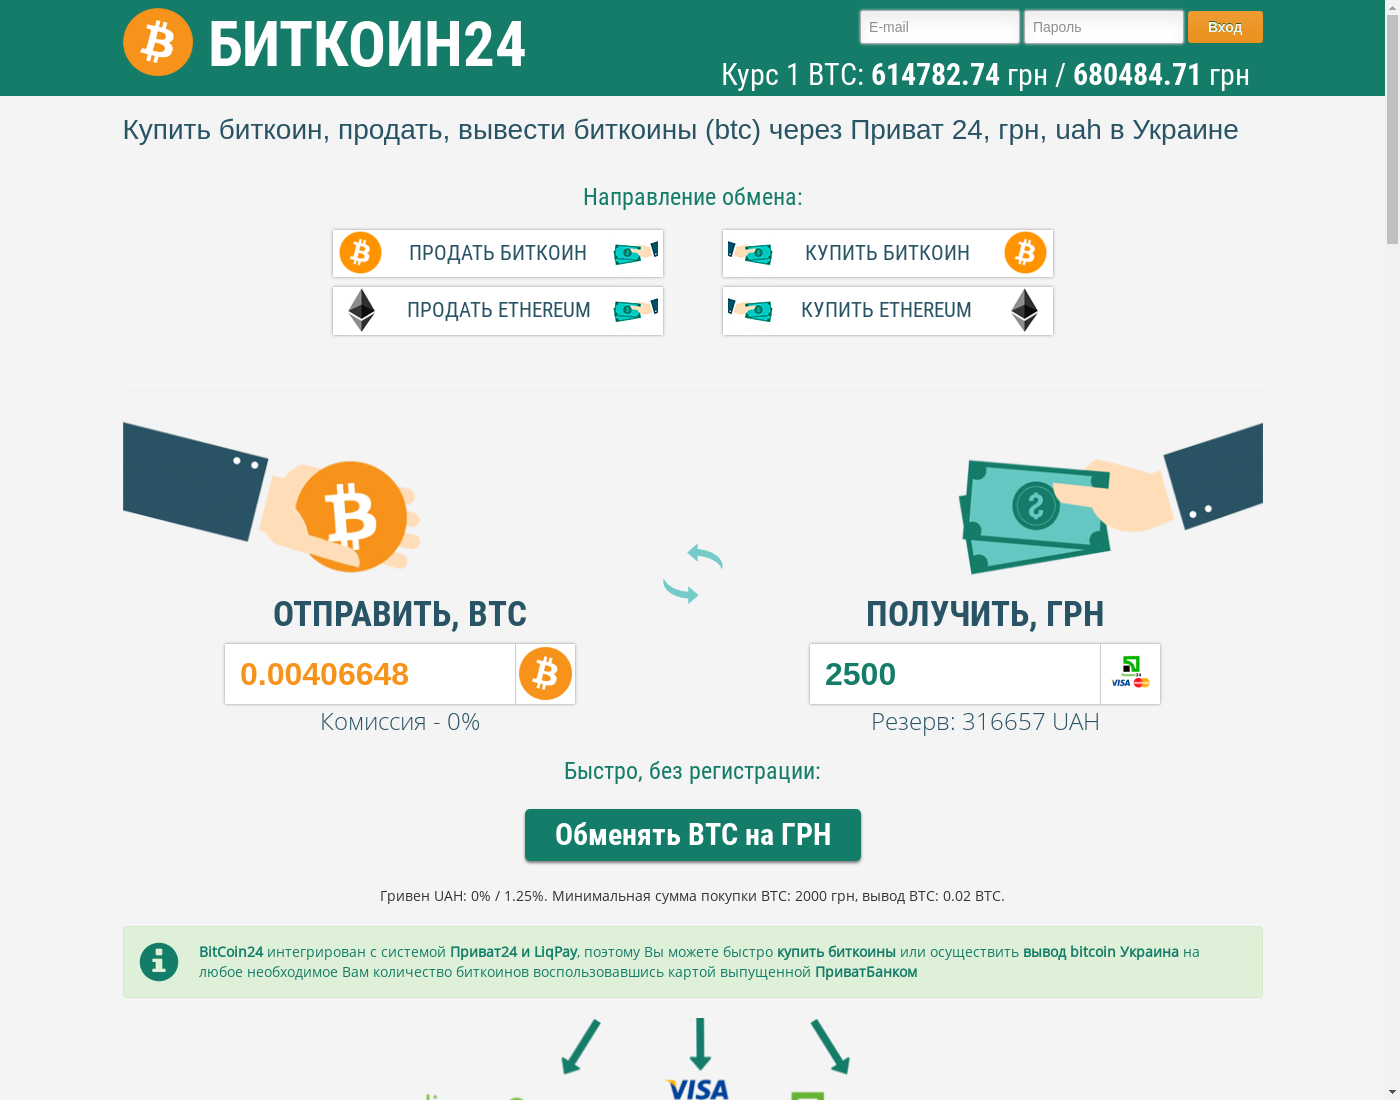 BitCoin24 user interface: the home page in English